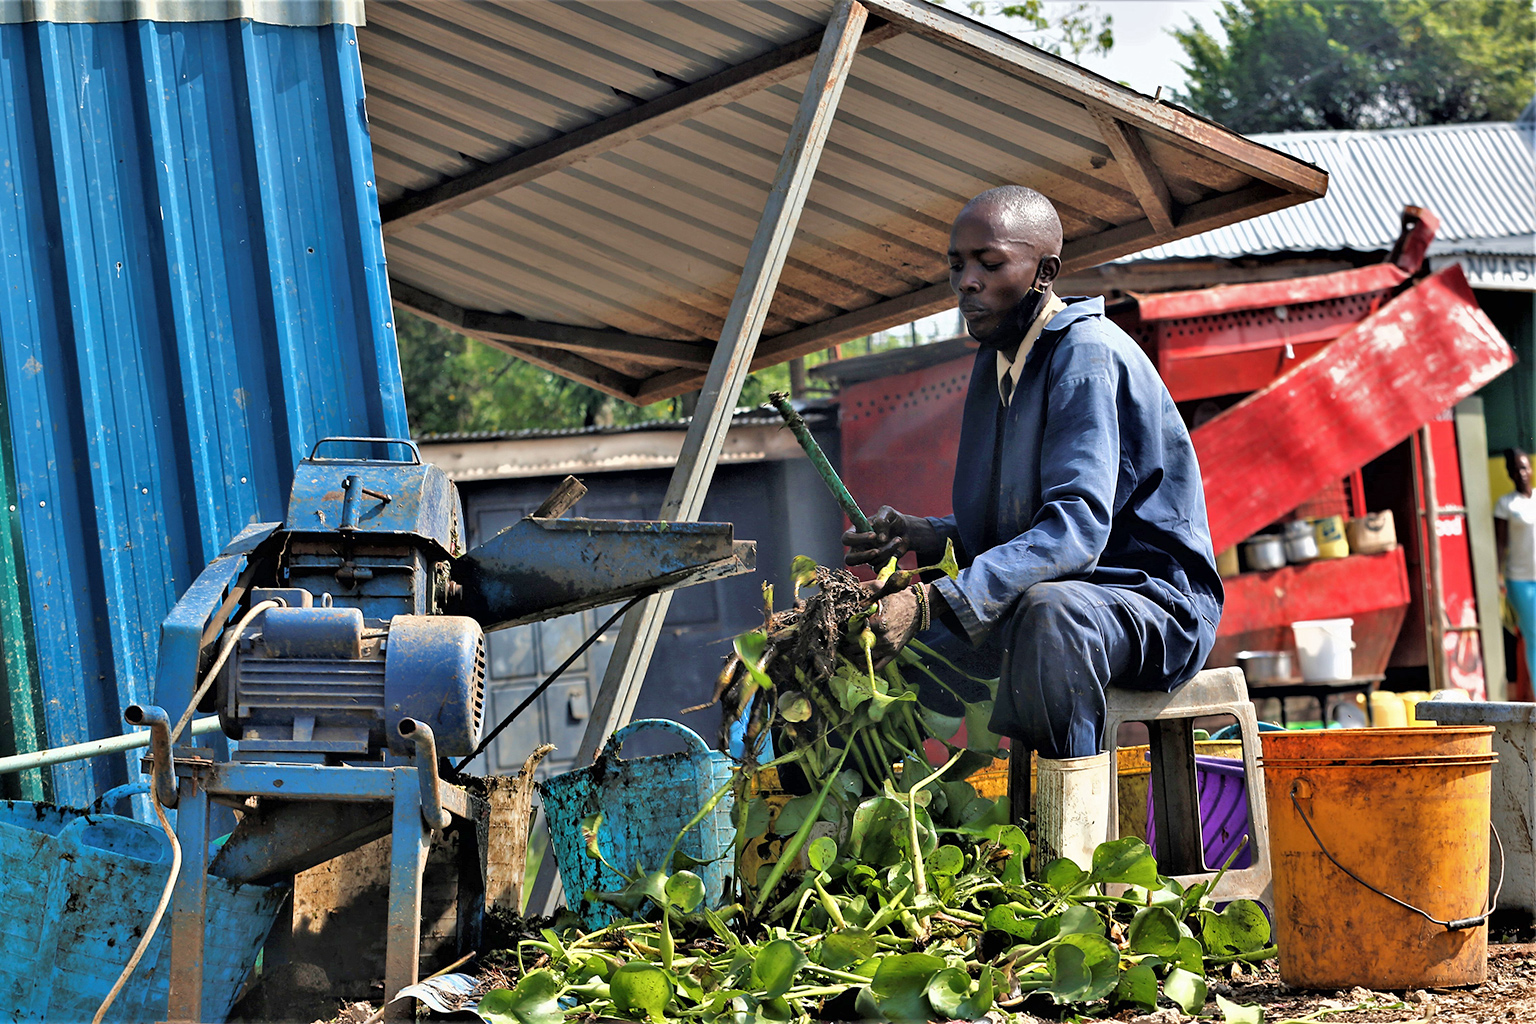 crushing water hyacinth into pulp for biogas digesters. credit Anthony Langat.